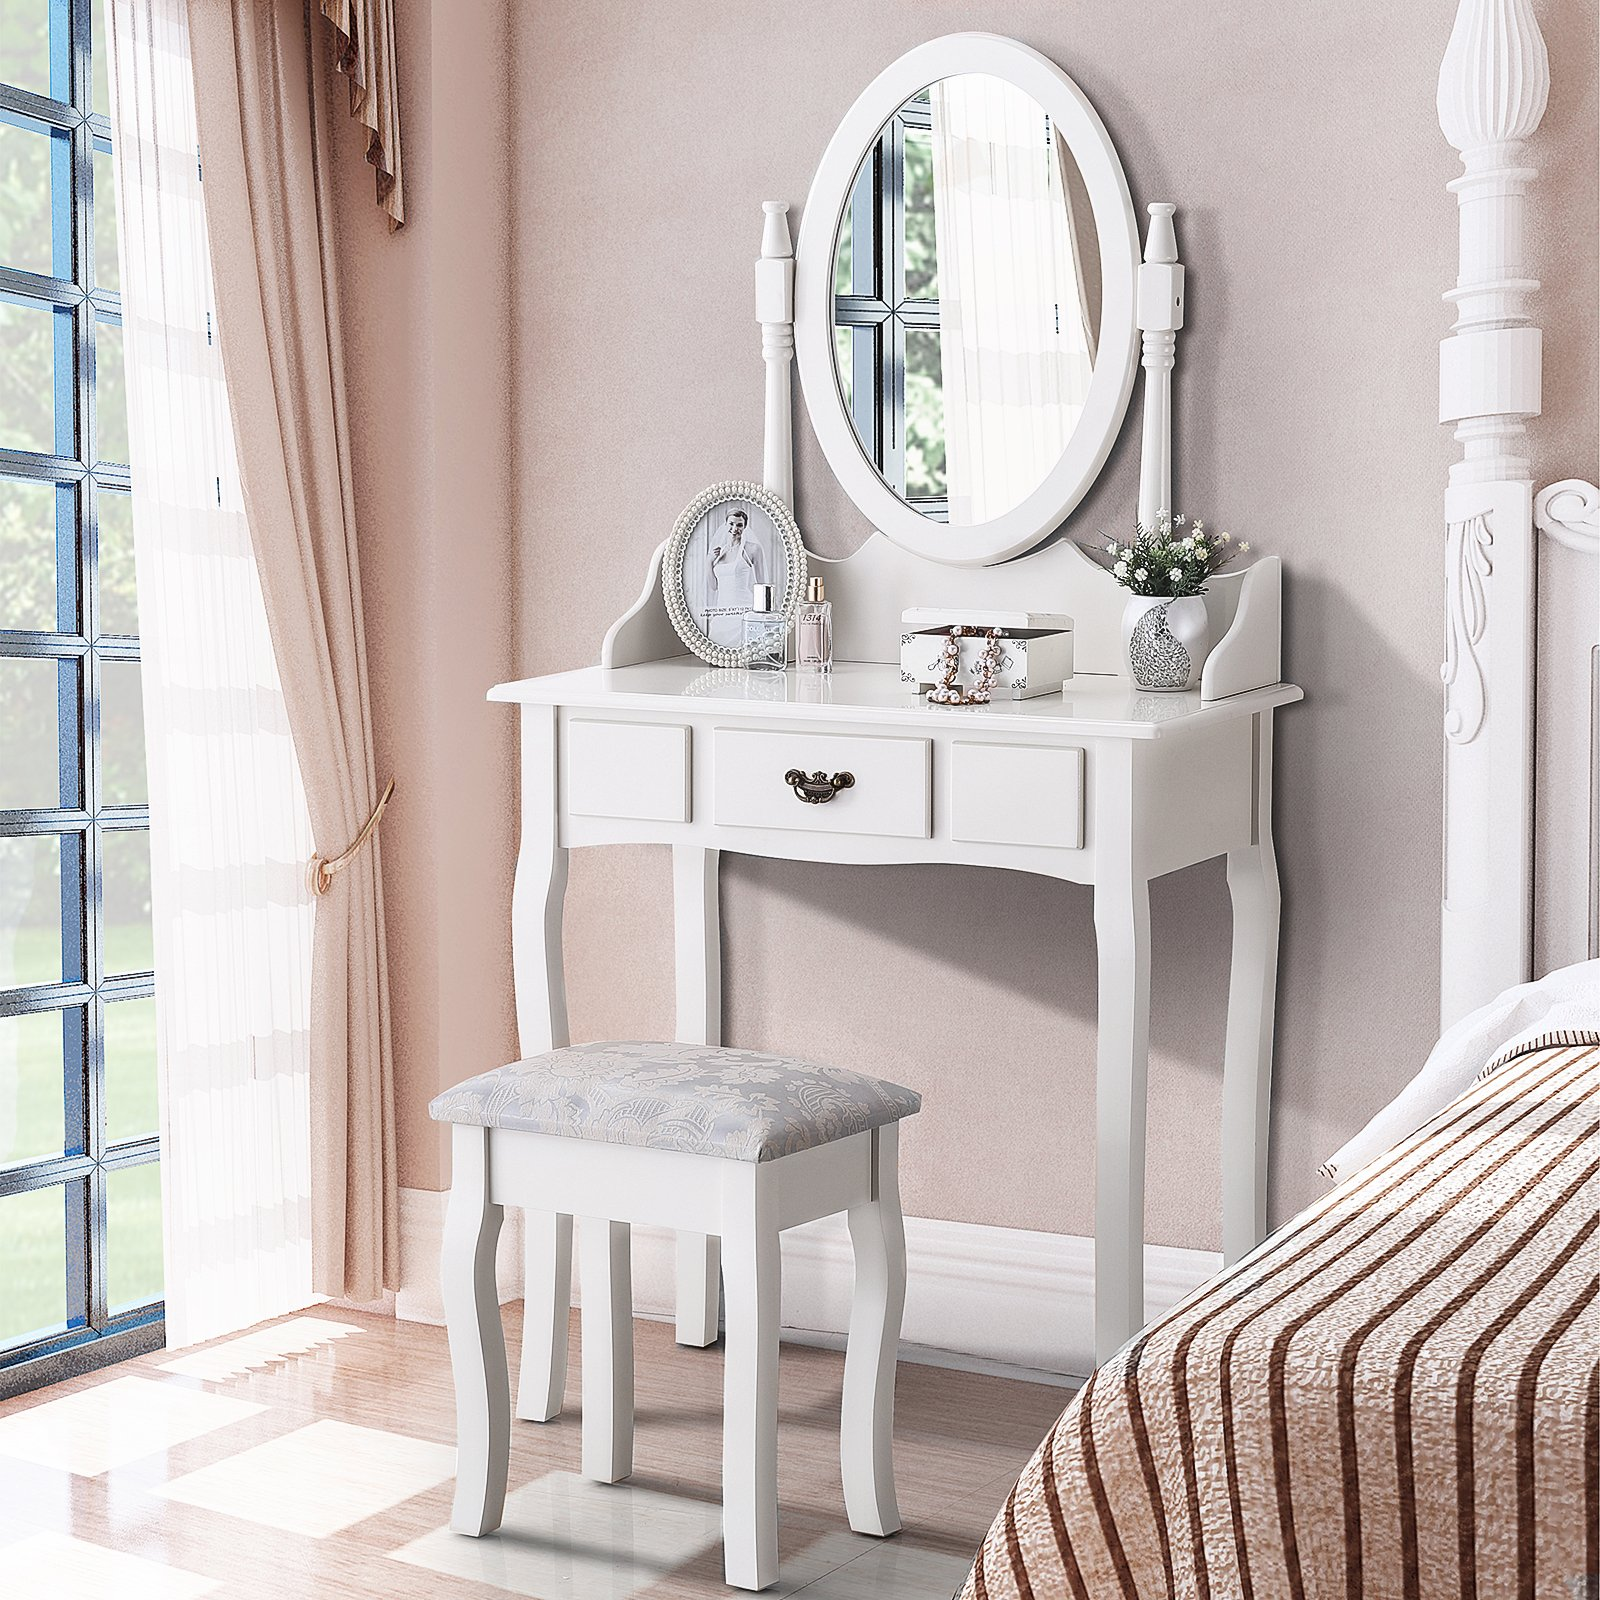 Mecor Vanity Makeup Table Set Dressing Table with Stool and Oval Mirror,White (1 Drawer)